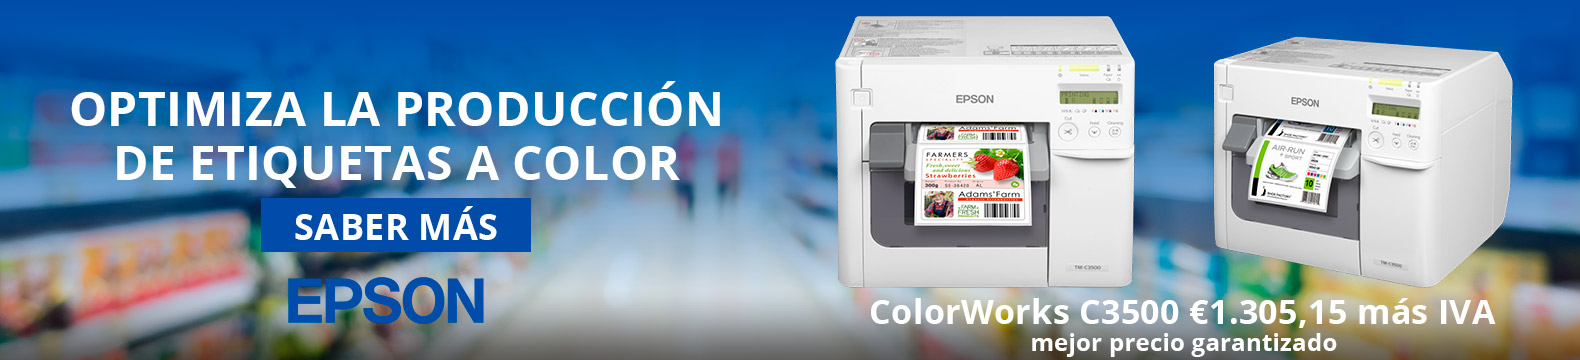 Optimiza la producción de etiquetas a color